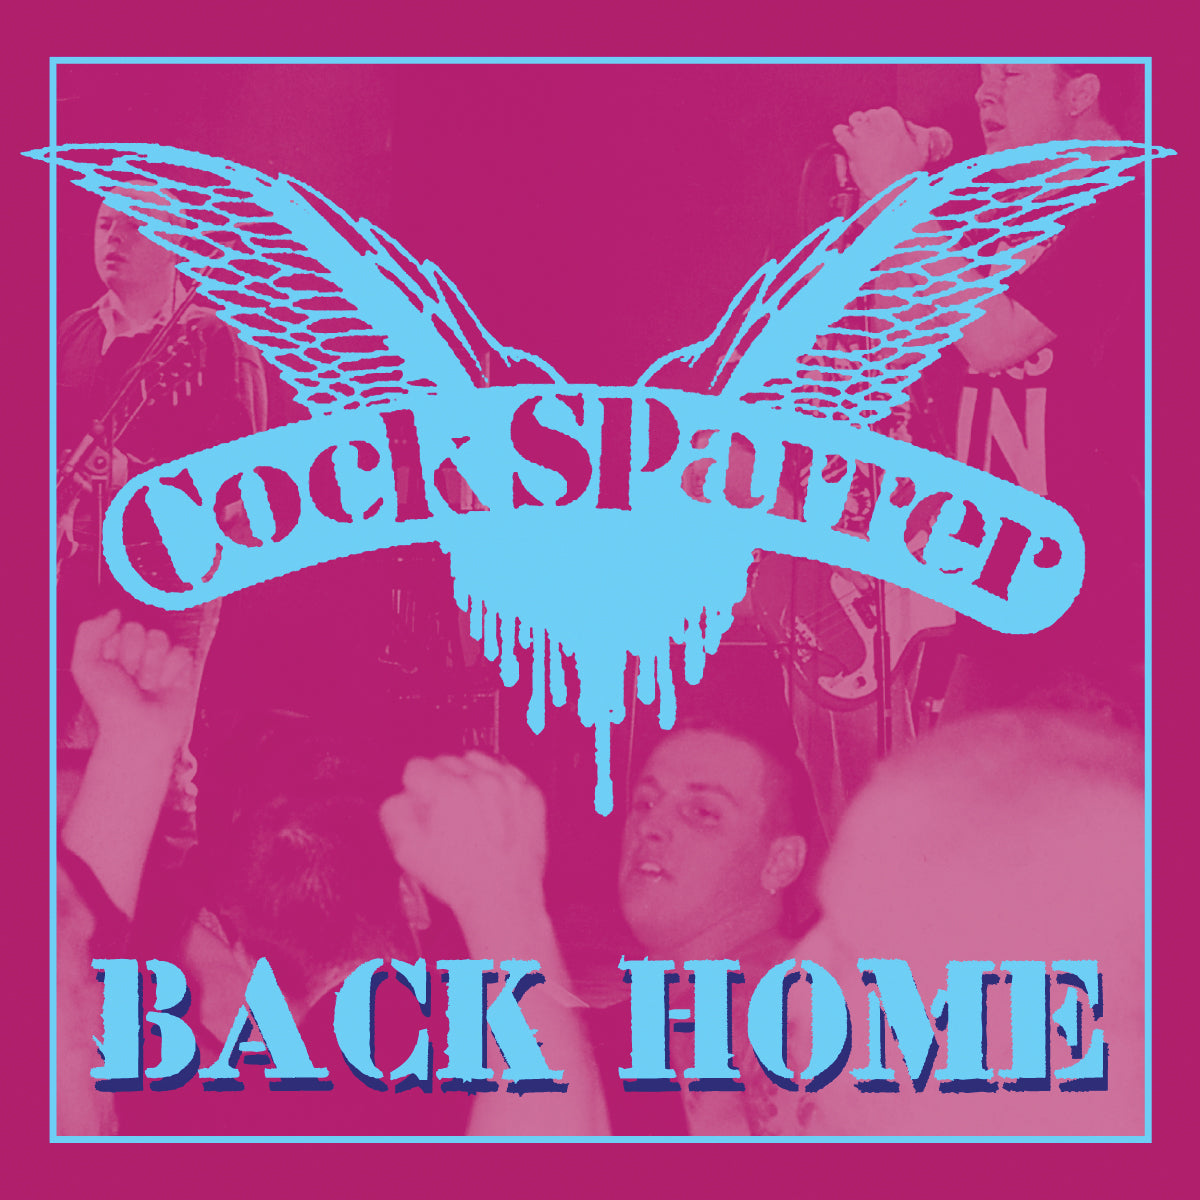 Cock Sparrer - Back Home 2xLP